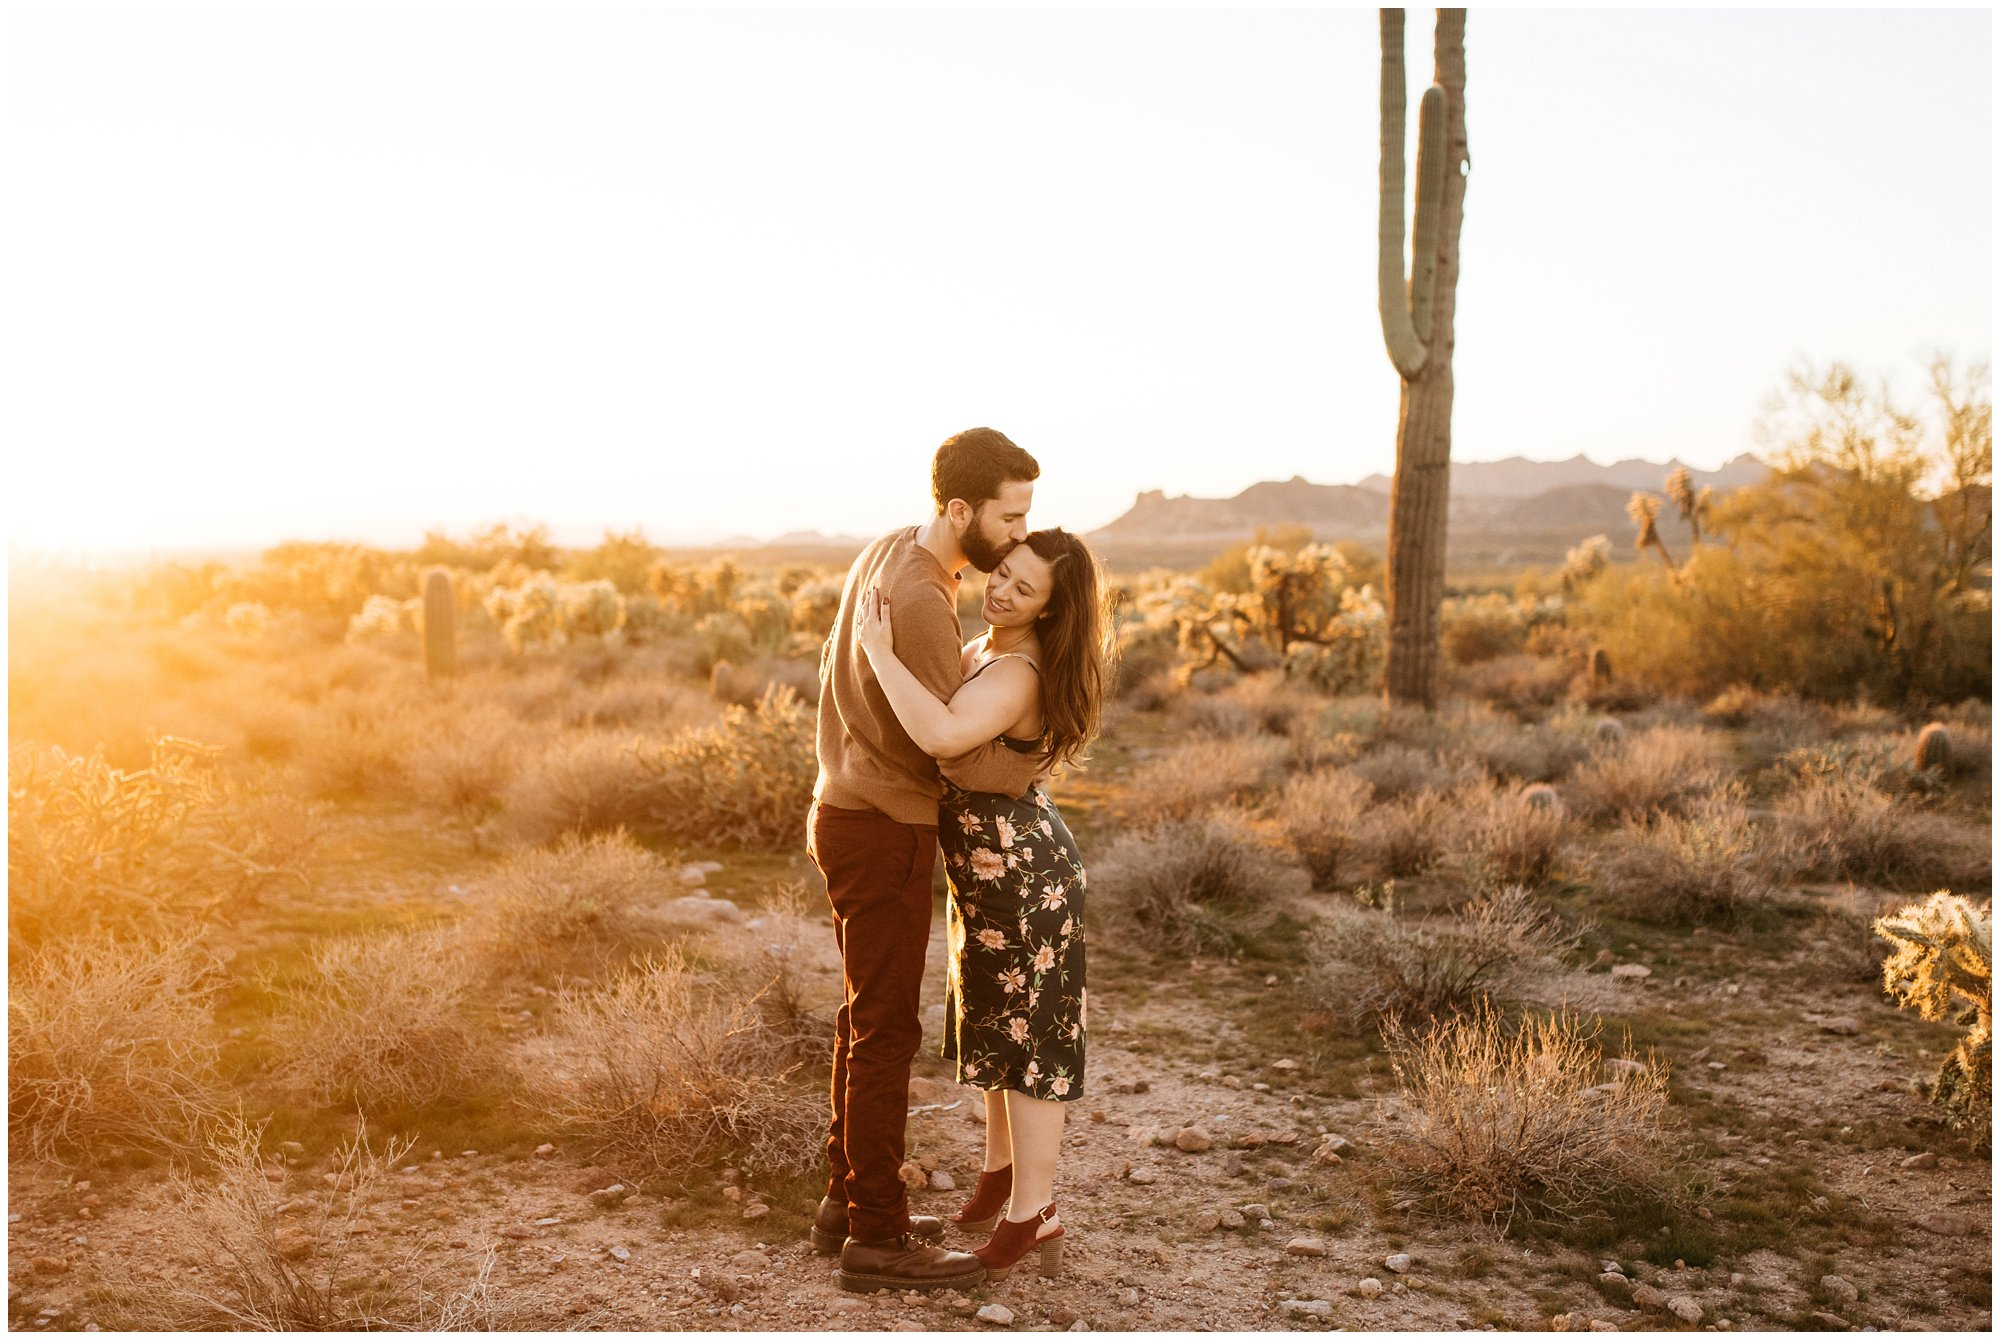 Arizona Desert Engagement Session - Megan + Geno - Ashtyn Nicole Photo_0025.jpg